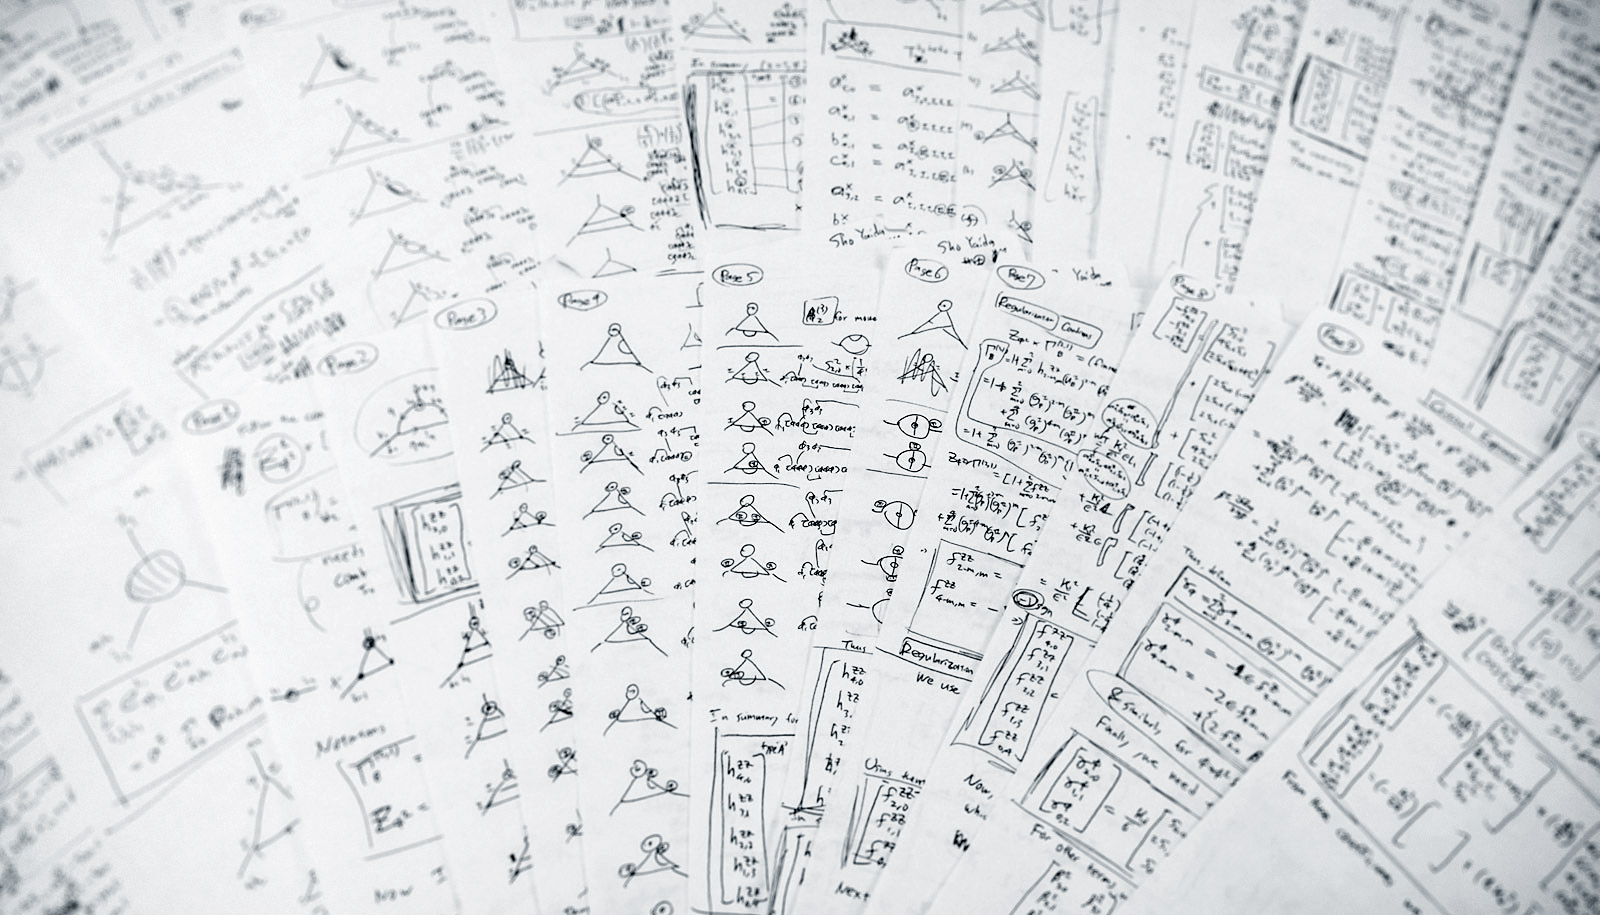 Sho Yaida's 30 handwritten pages of calculations.